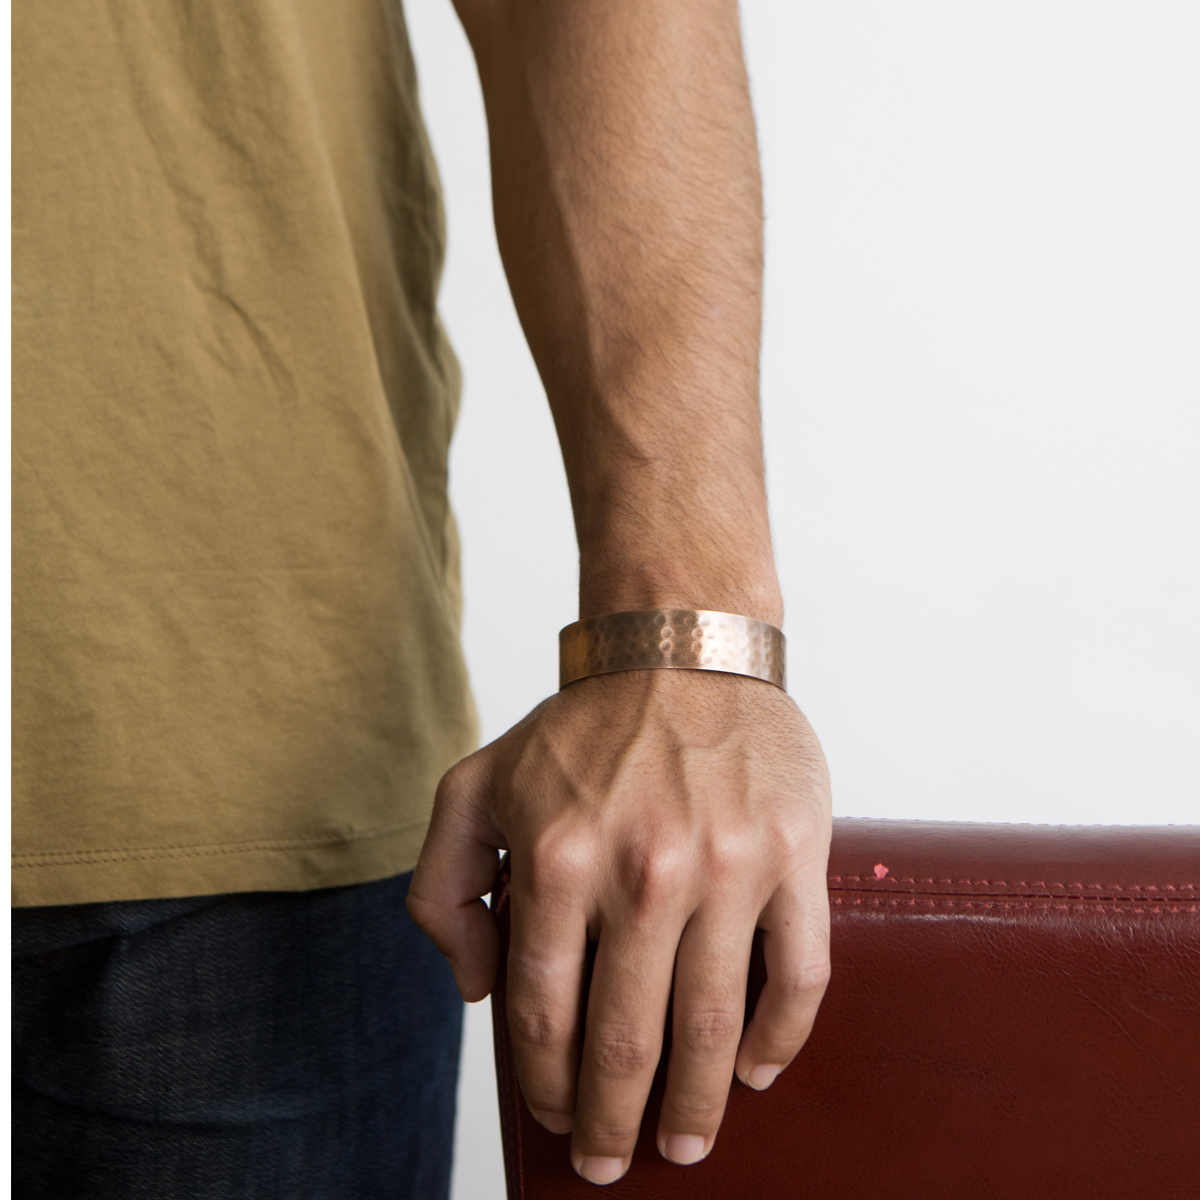 jmb328_raj_cuff_copper_arm.jpg